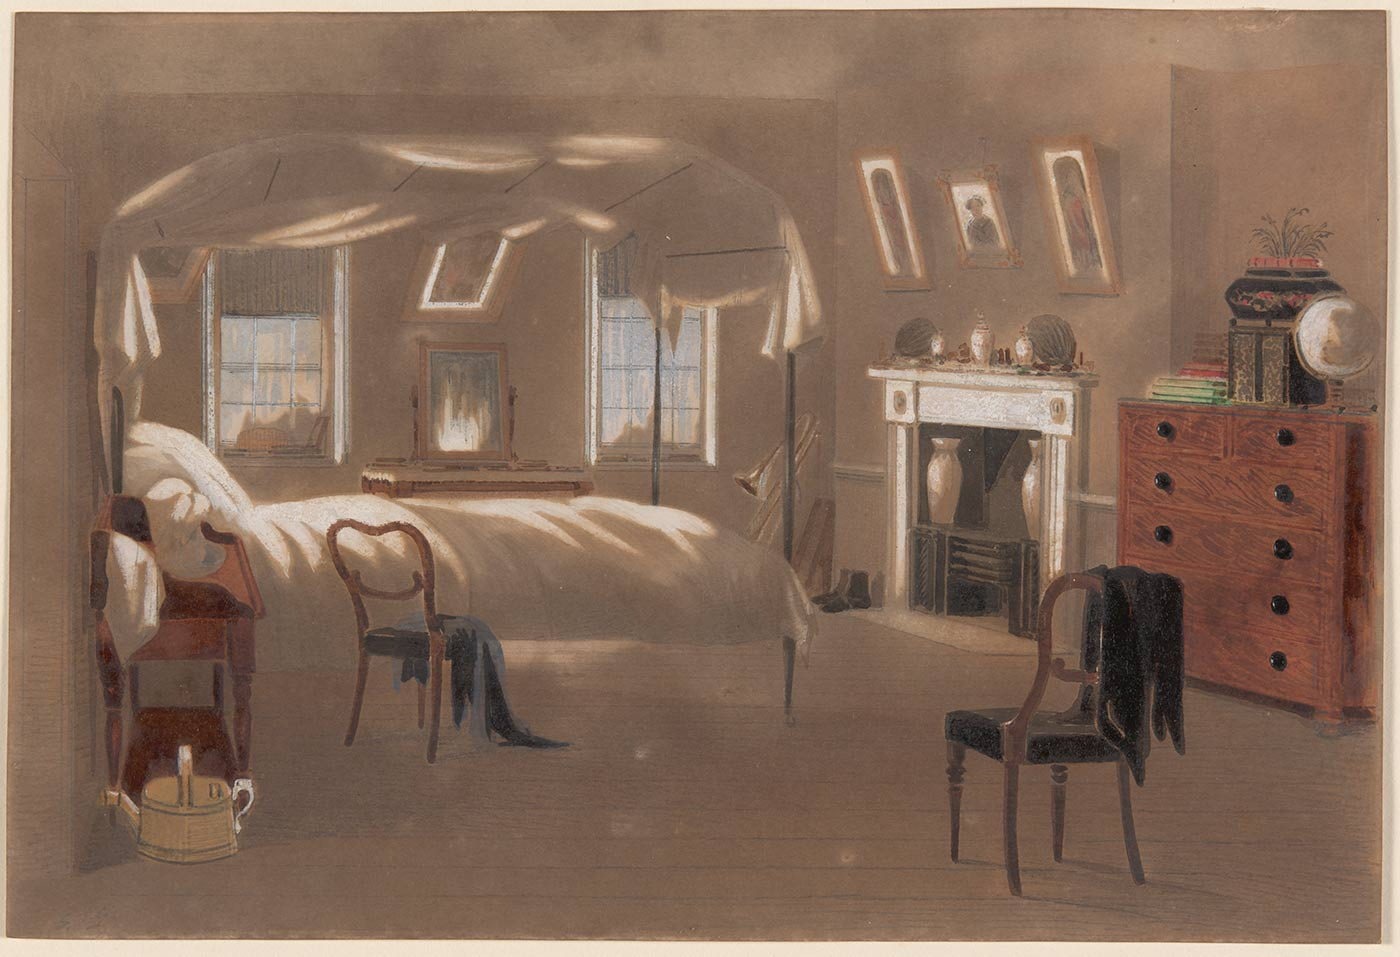 A watercolour painting in greys, browns and white with small sections of green, red and blue depicting an empty bedroom. The room includes a bed, two chairs, a fireplace, a set of drawers, a washing stand, and a vanity. Handwritten in pencil in the bottom left hand corner is 'S.T.G.'. - click to view larger image